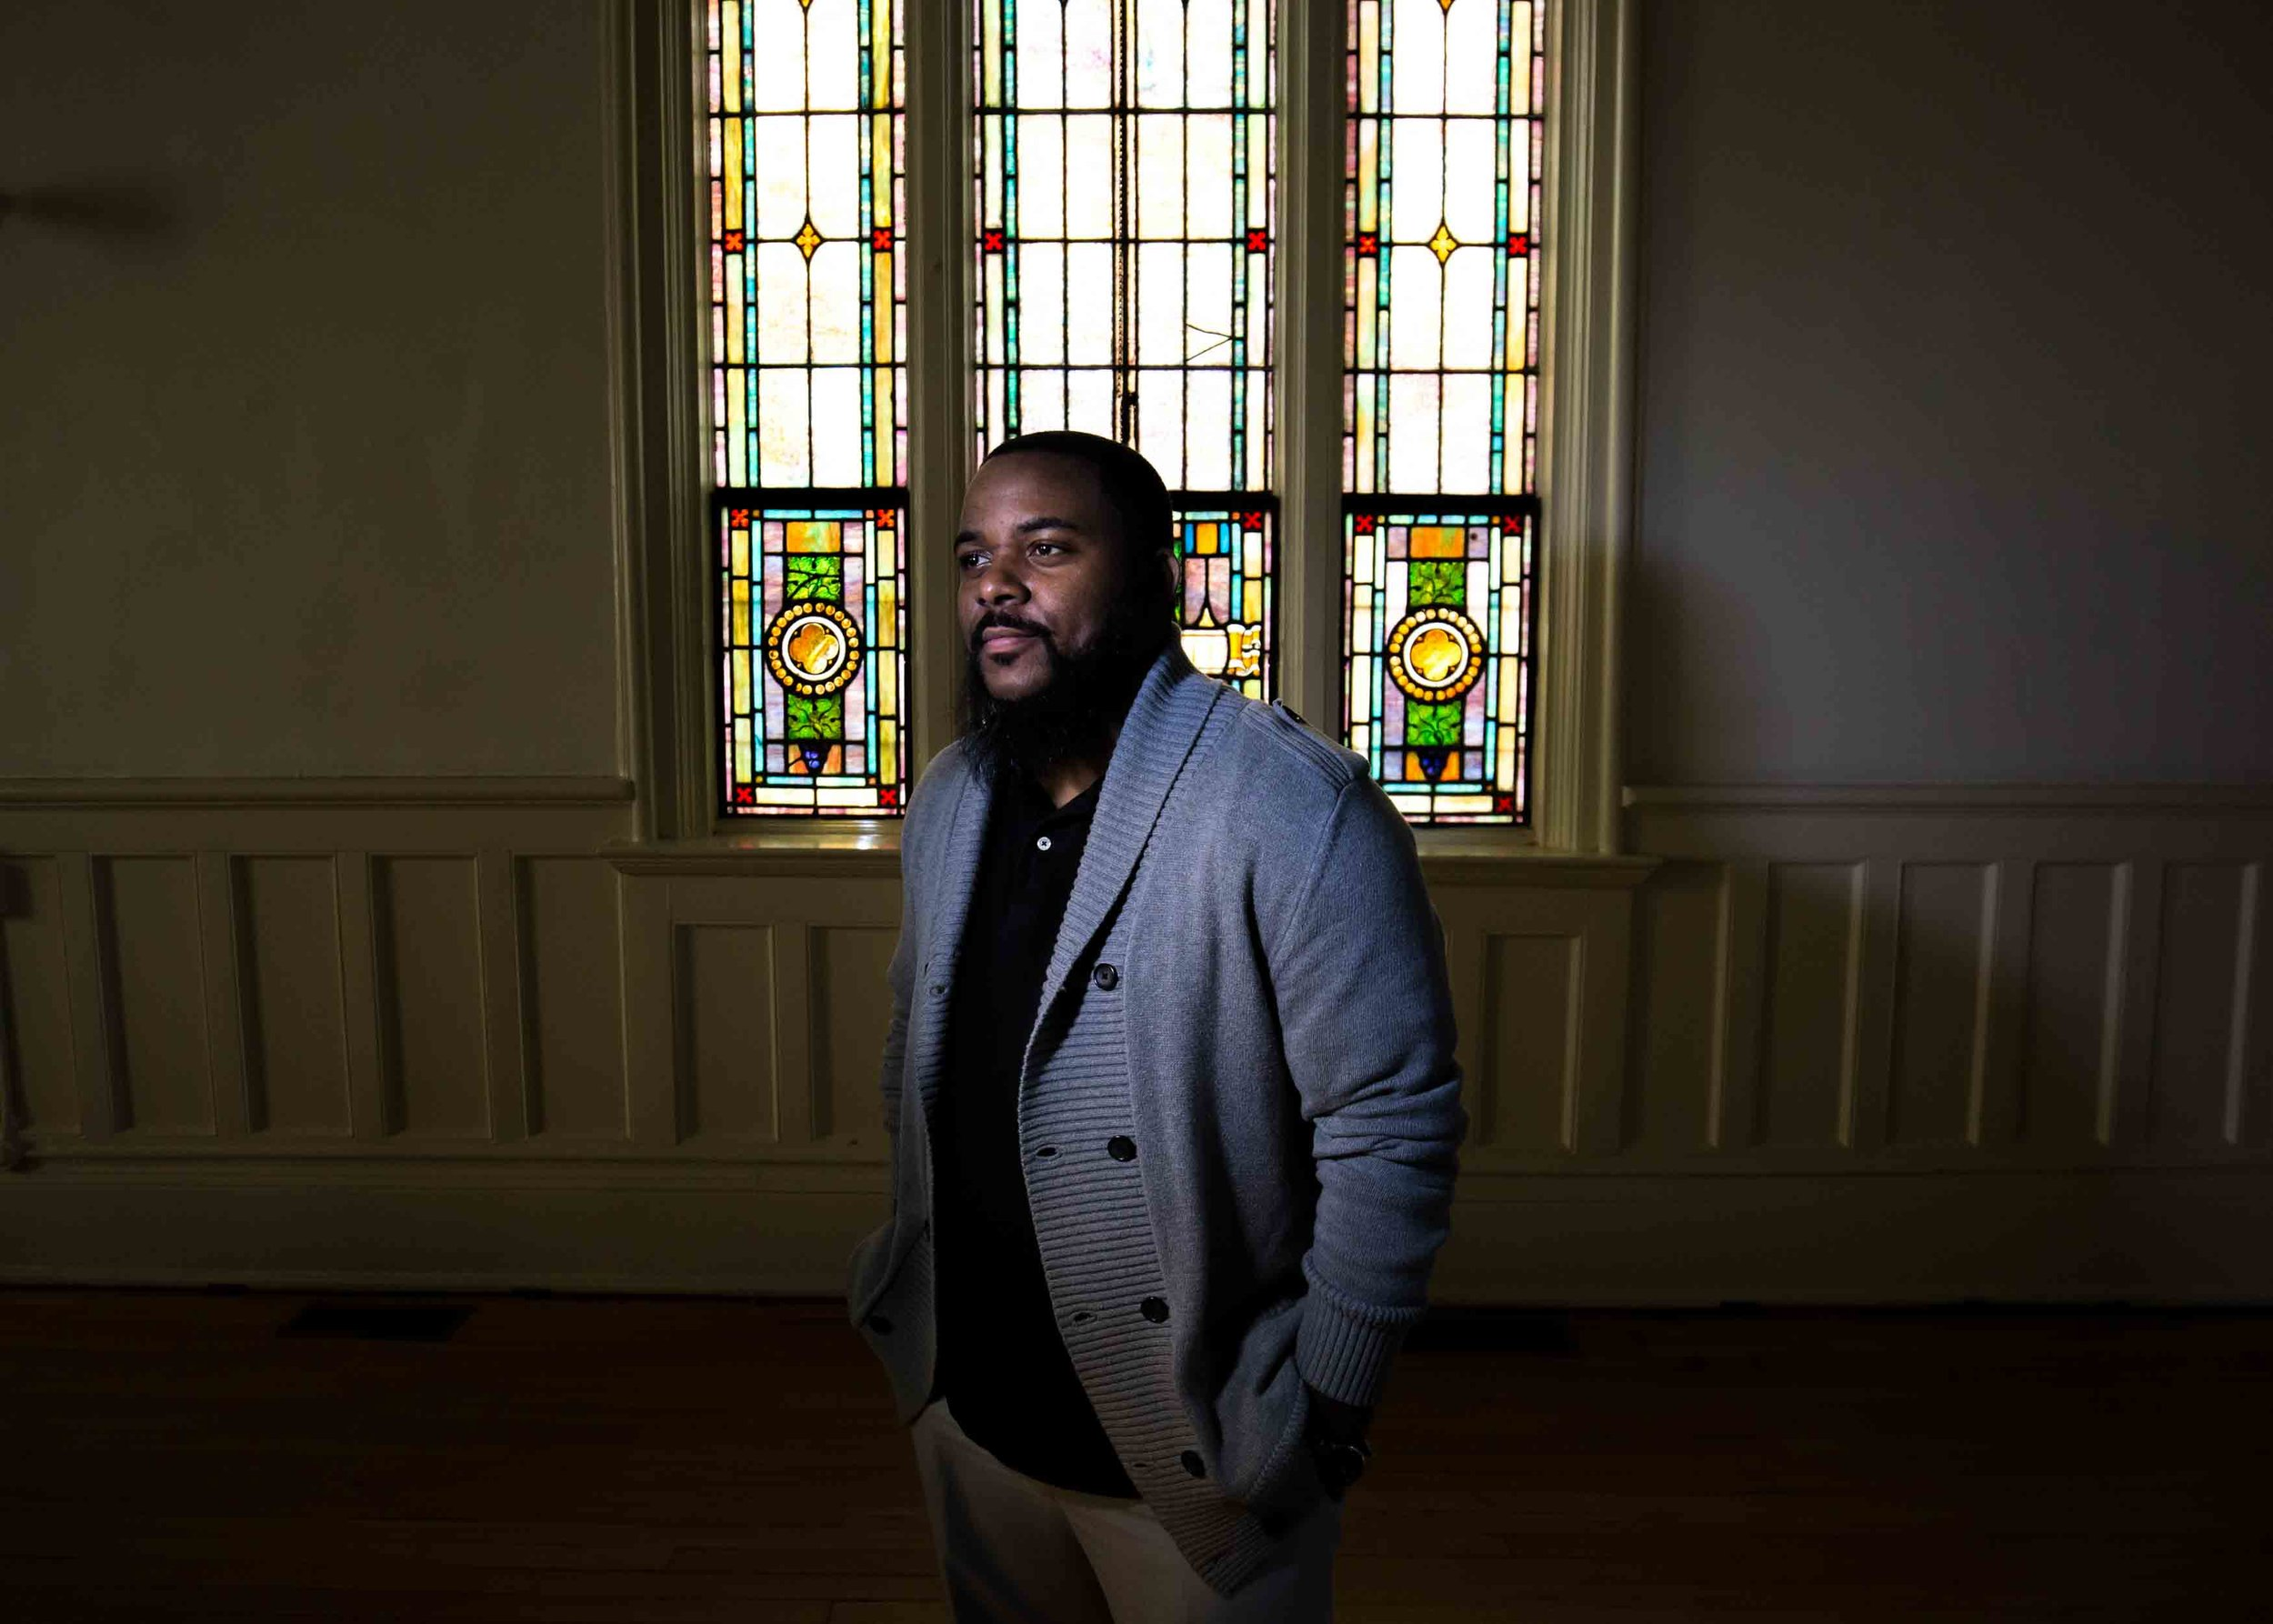 Billy Honor, pastor of Pulse Church, poses for a portrait following a worship service at his church, Sunday, Nov. 13, 2016, in Atlanta.  Branden Camp / for NBC News